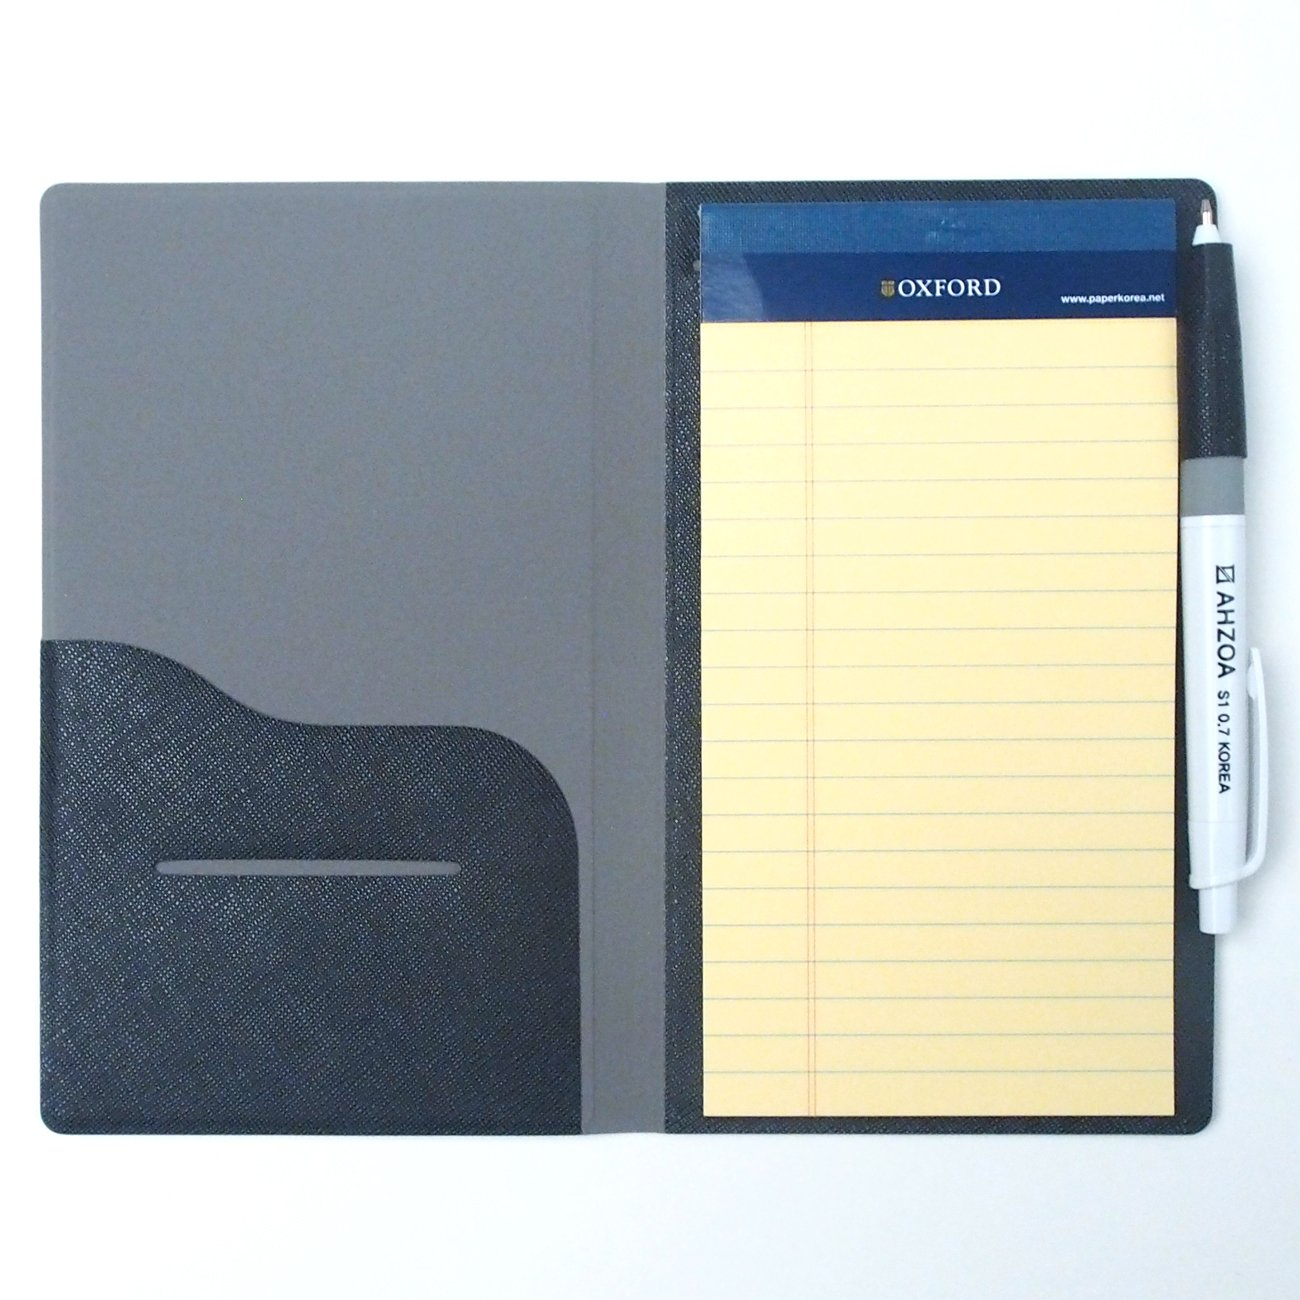 2 Pockets Slim Memo Padfolio F1 with AHZOA Pencil, Including Legal Writing Pad, Handmade 4.33 X 7.28 inch Folder Clipboard Writing Pad (Black)